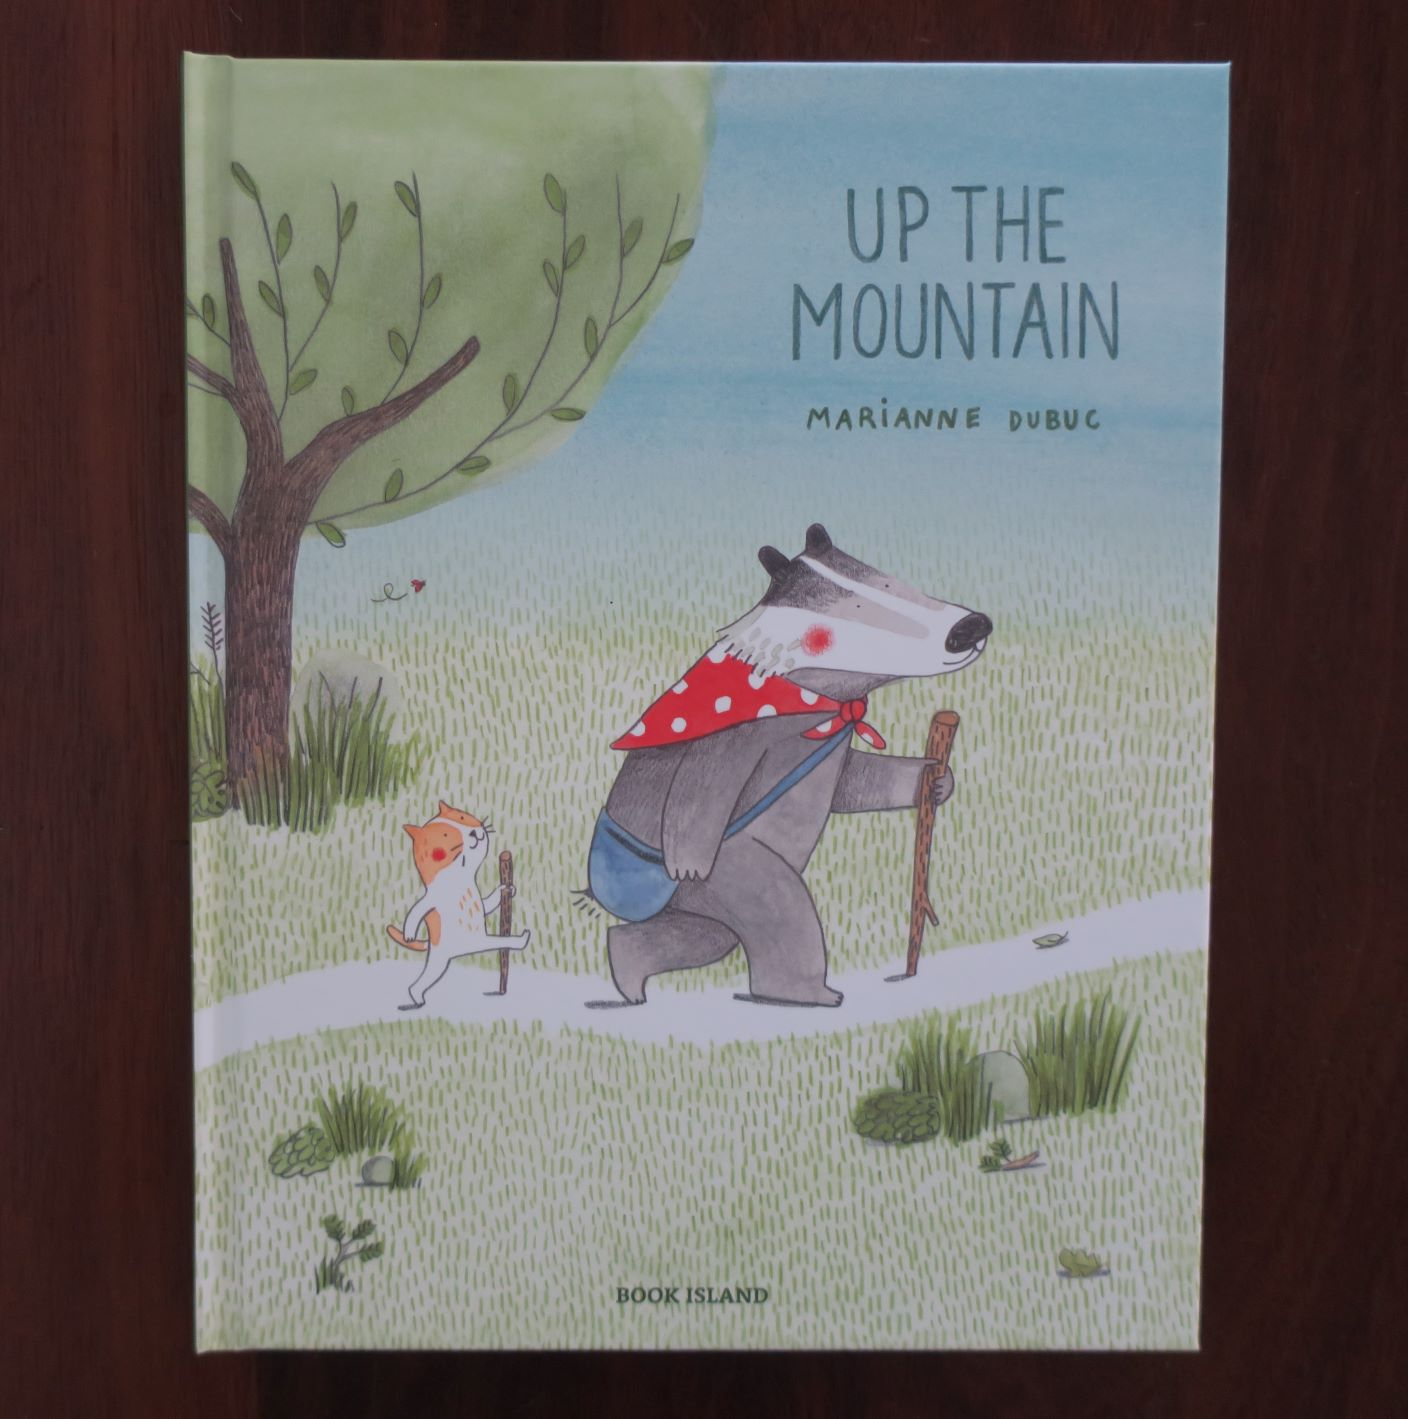 Up the Mountain by Marianne Dubuc (Book Island, 2018)